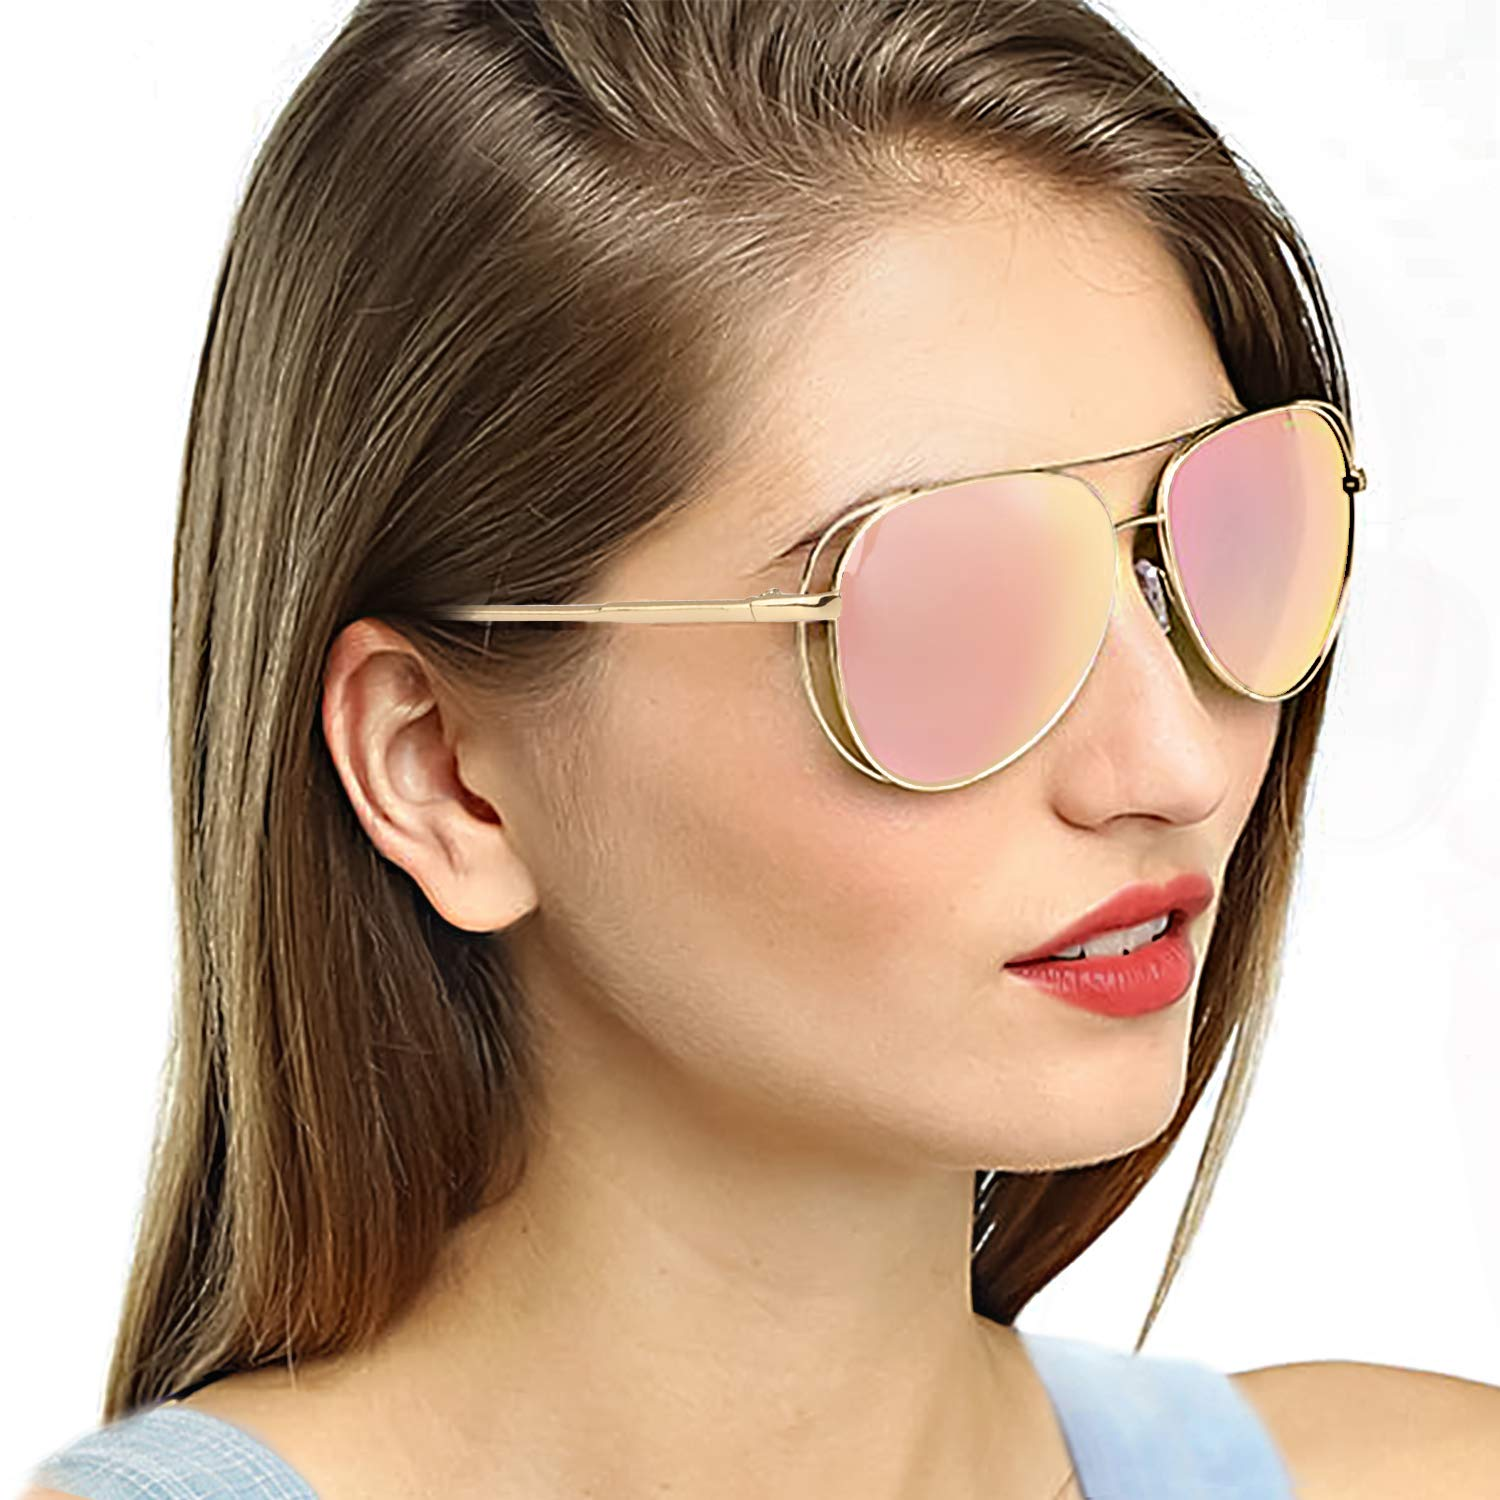 2261b4b29d SODQW Oversized Aviator Women s Classic Sunglasses Polarized Mirrored Lens  Metal Wire Fashion Eyewear - UV 400 Protection